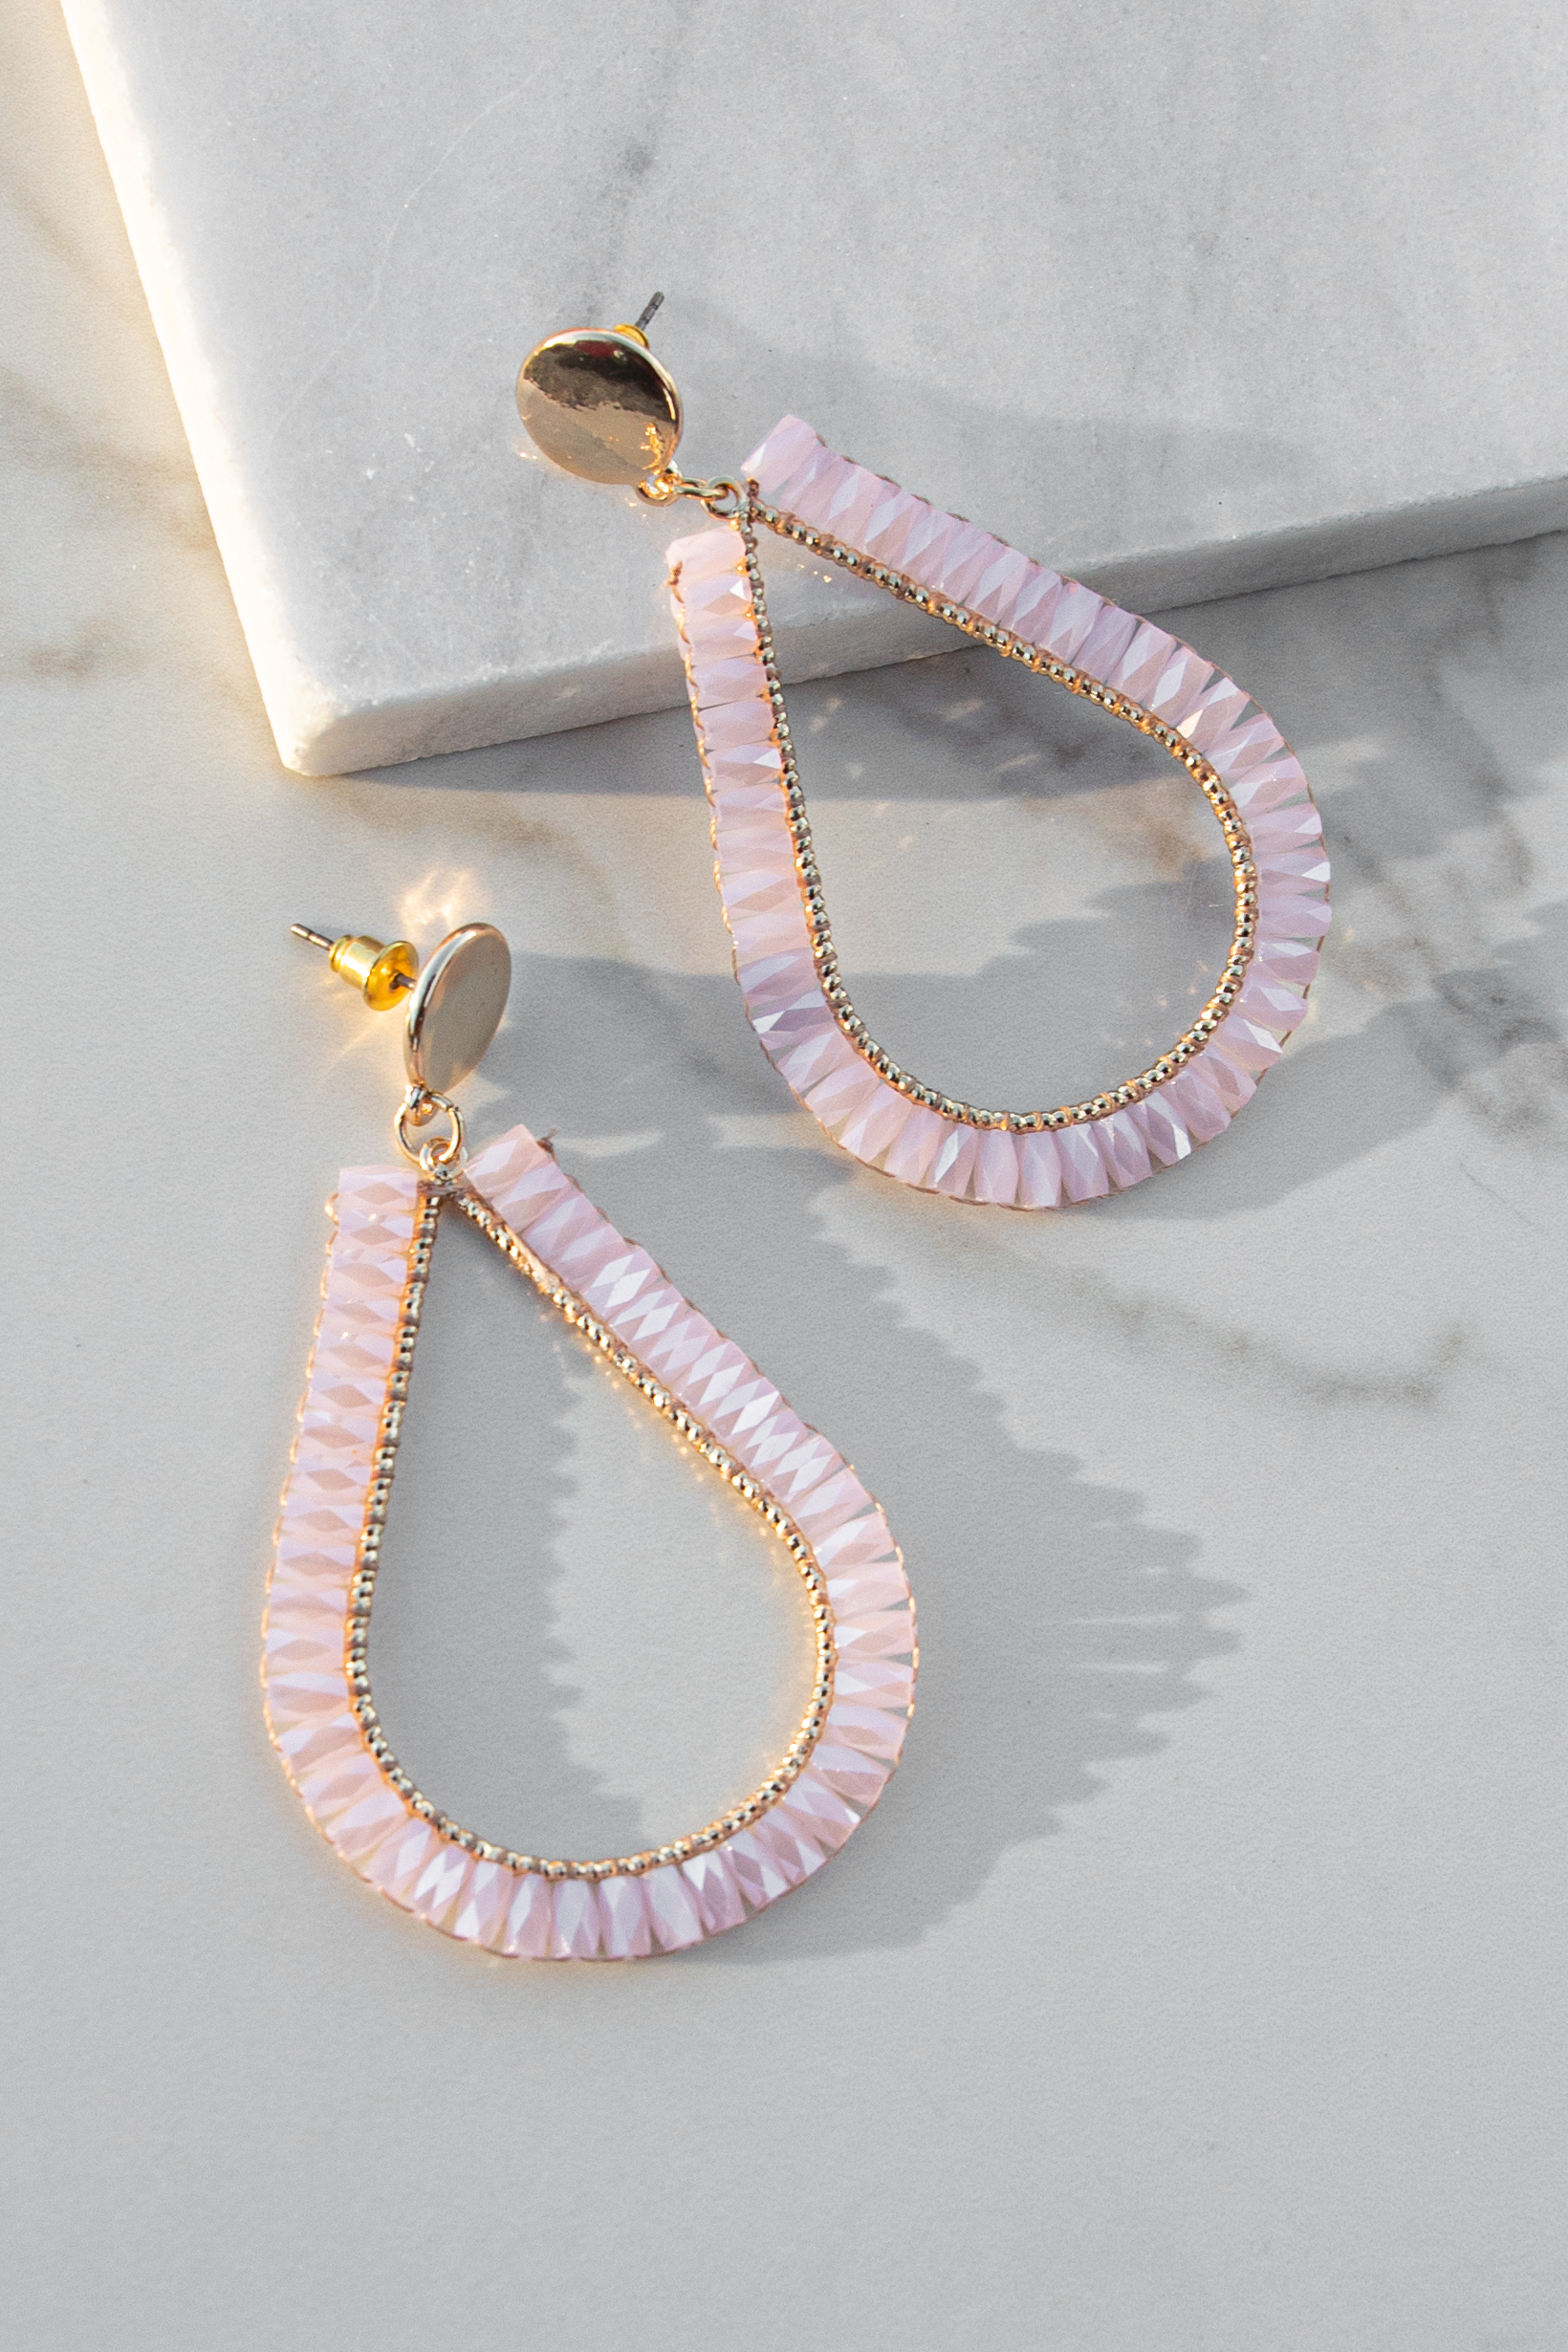 Gold and Blush Tear Drop Dangle Earrings with Beaded Details